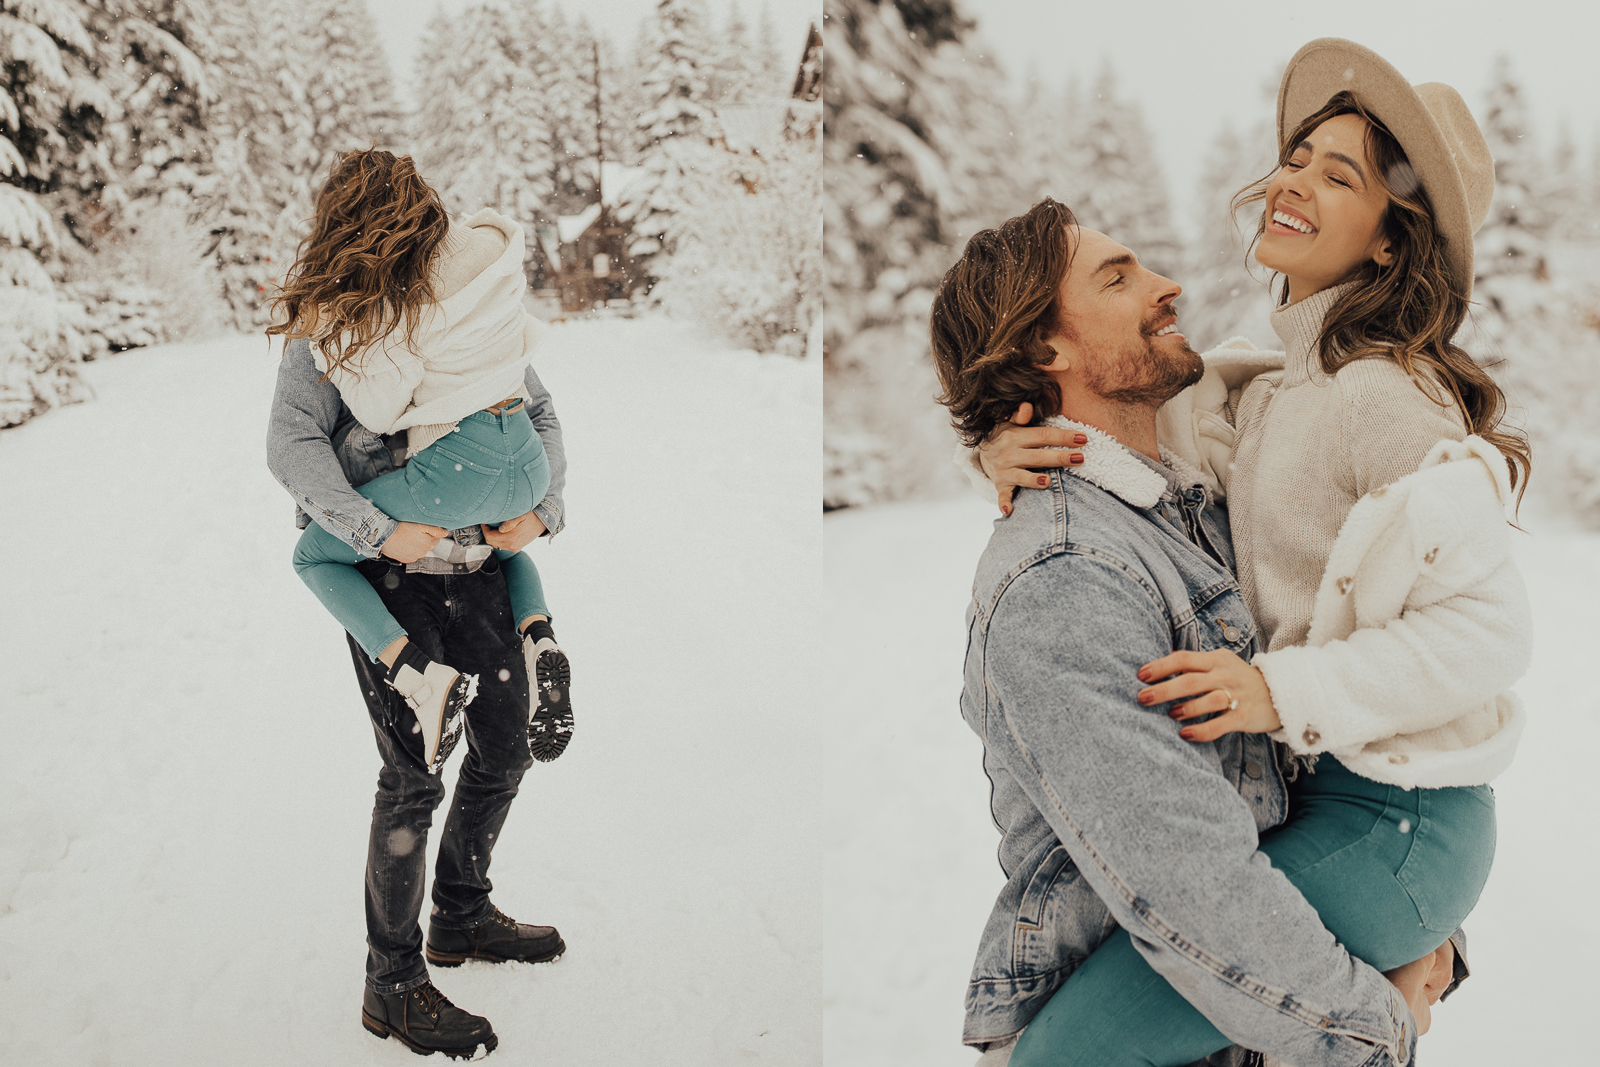 5 Steps to the PERFECT COUPLE SNOW SHOOT